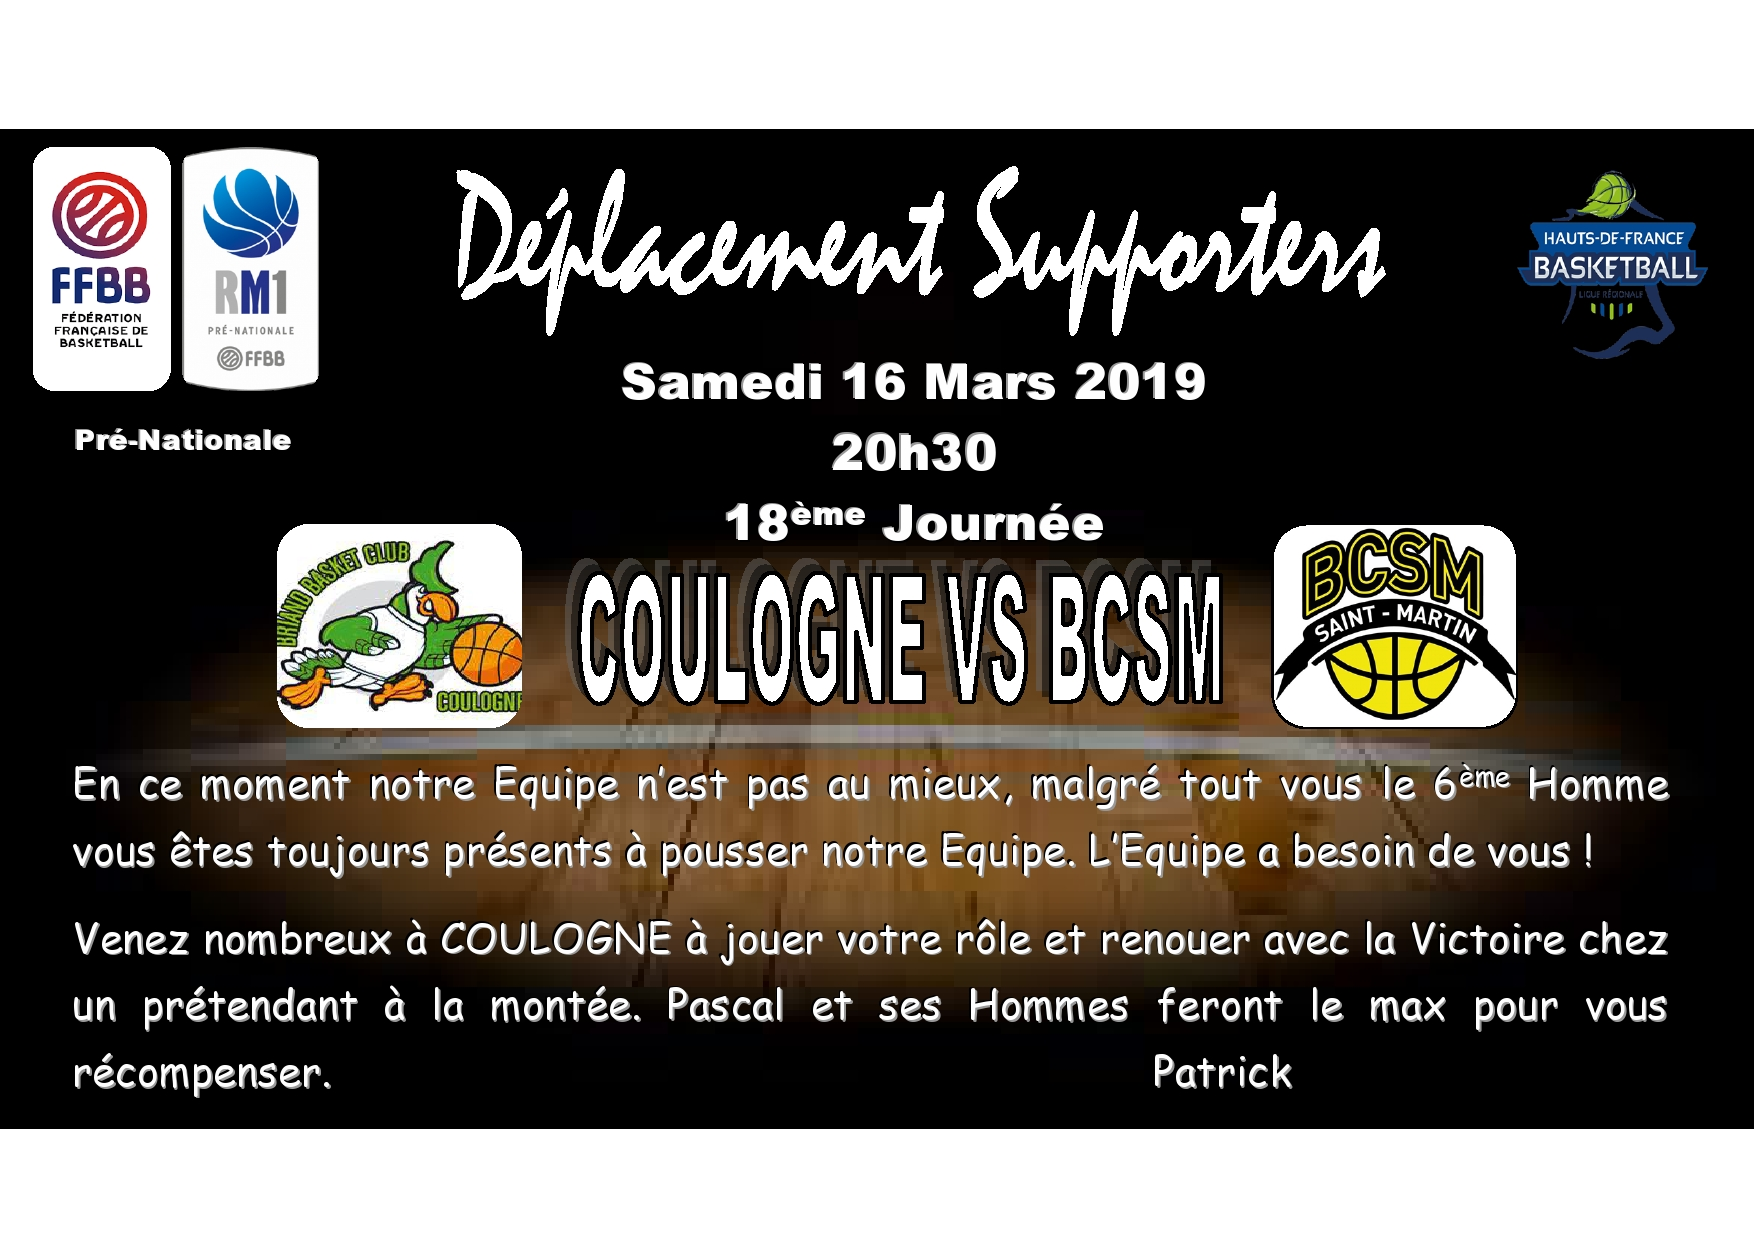 AFFICHE EVENEMENT DEPLACEMENT A COULOGNE 16 MARS 19-page0001.jpg